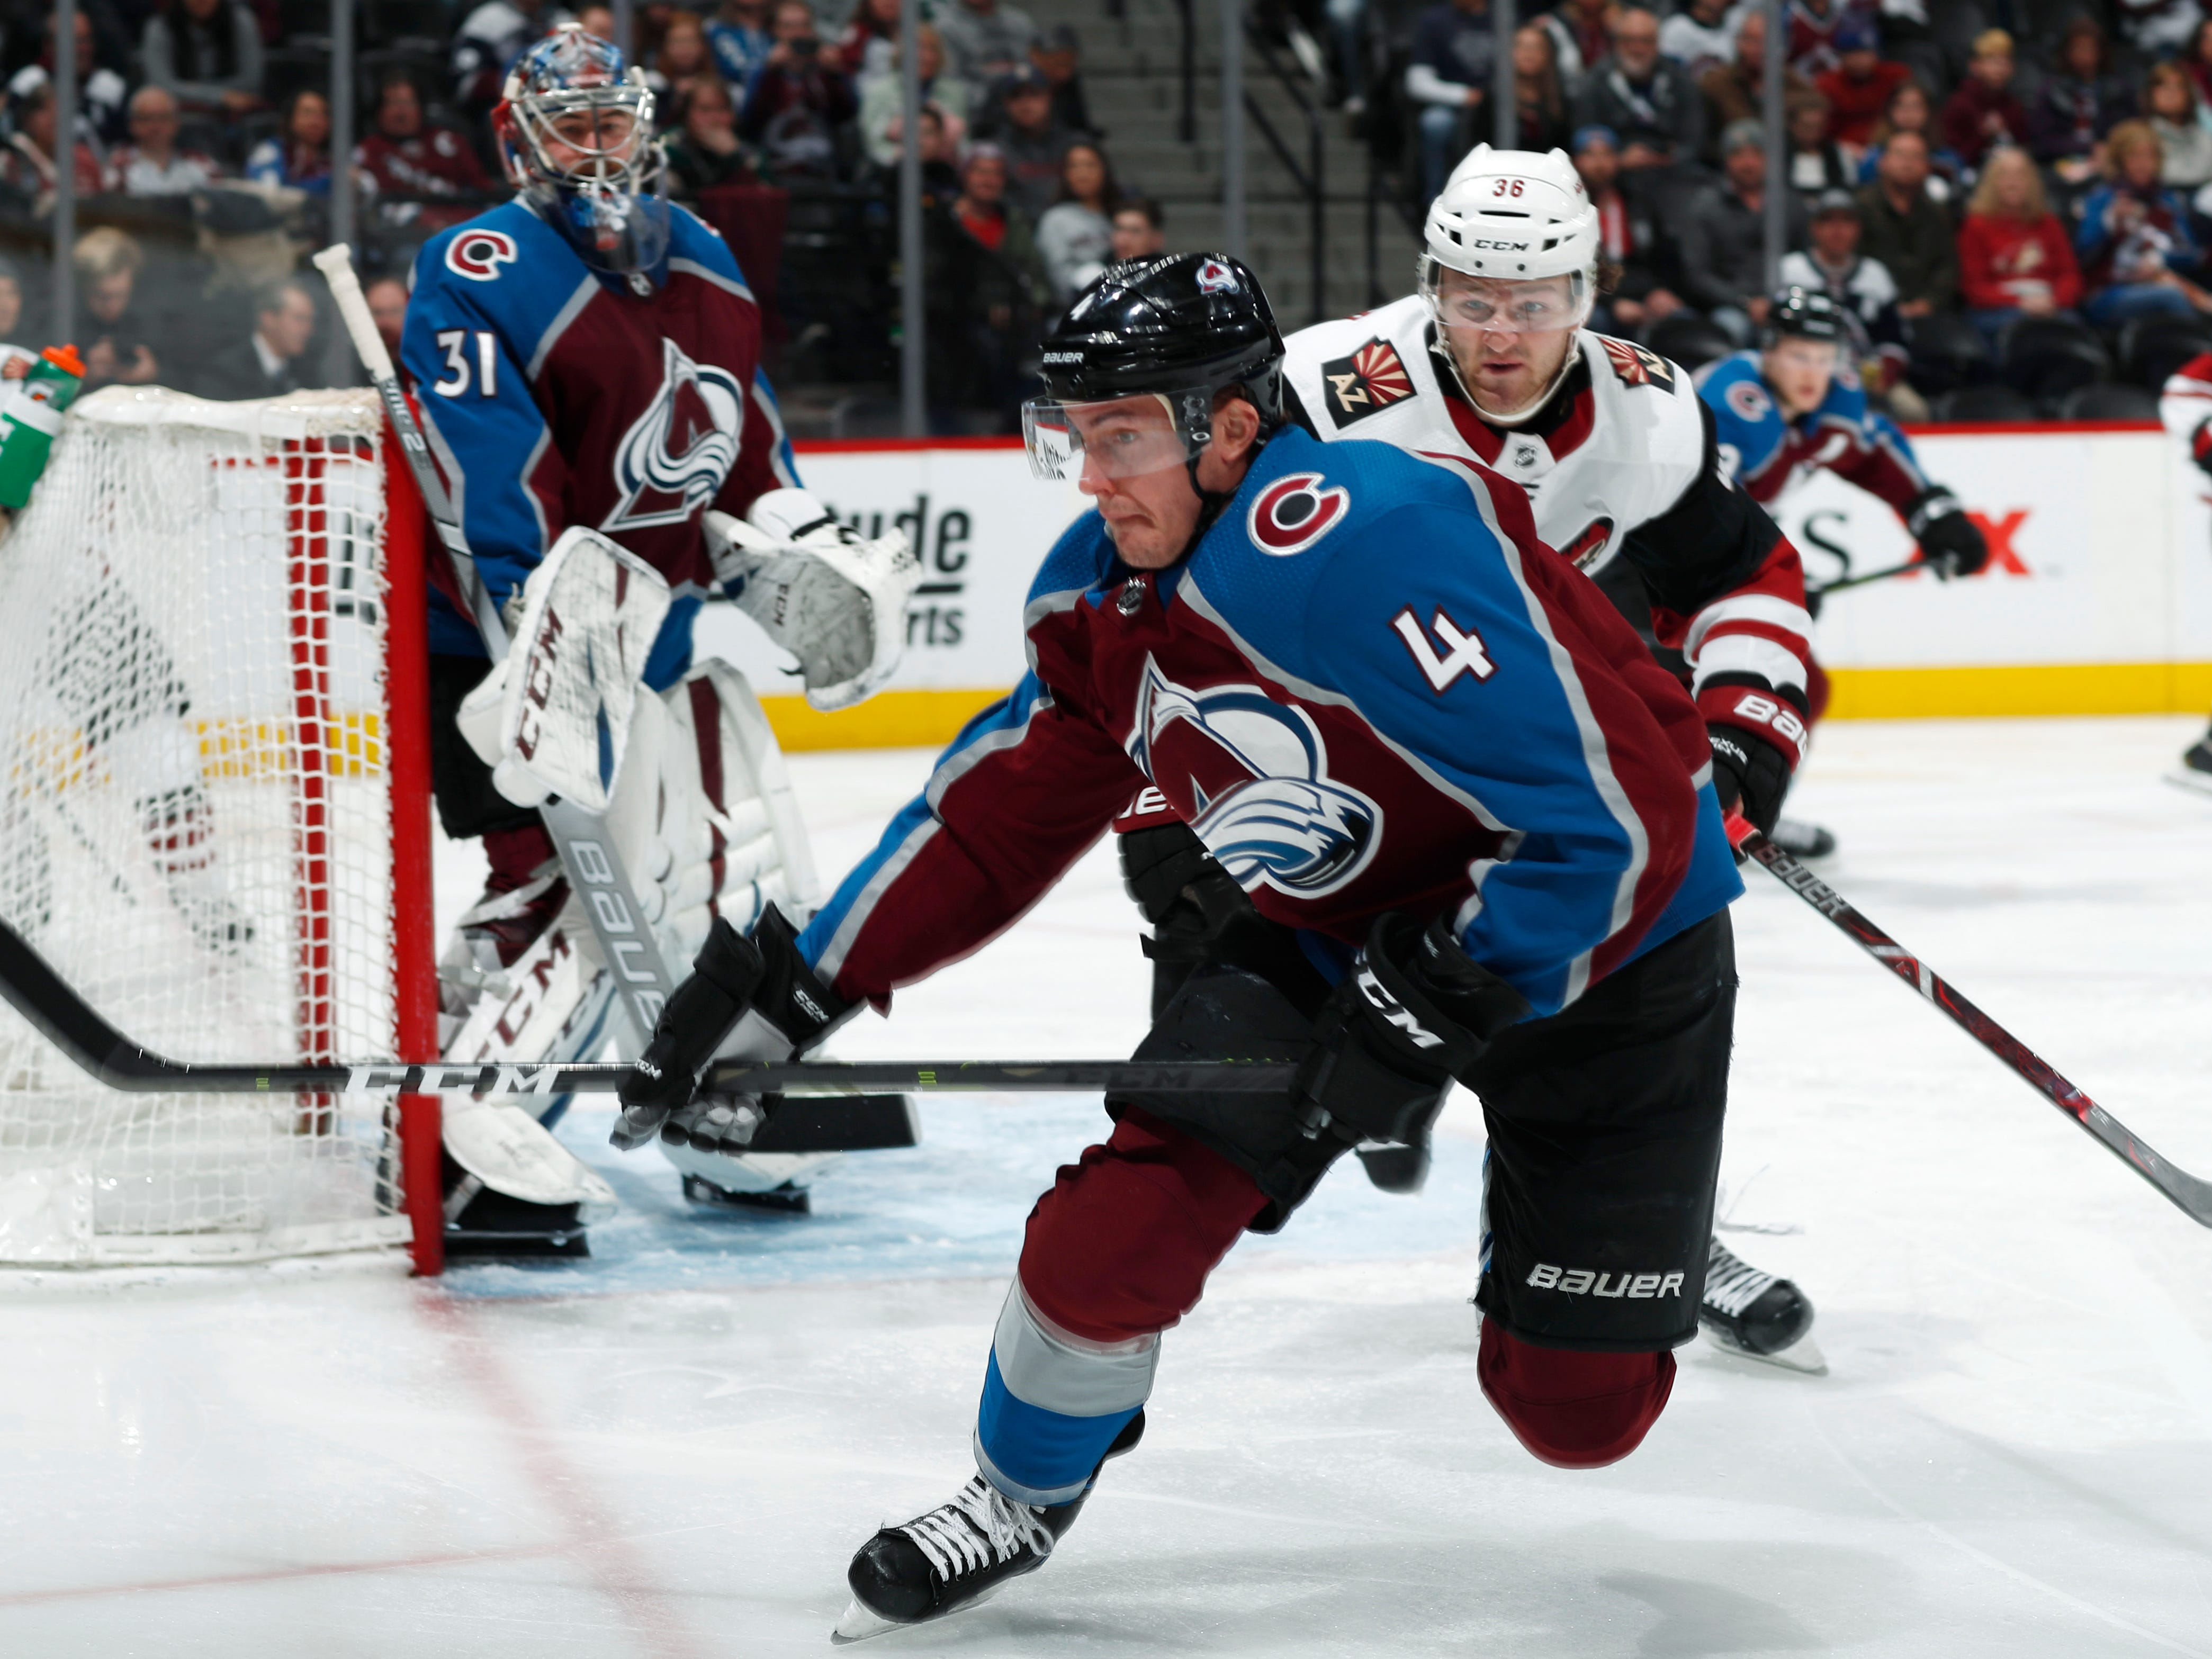 Colorado Avalanche defenseman Tyson Barrie, front, pursues the puck with Arizona Coyotes right wing Christian Fischer in the second period of an NHL hockey game Friday, March 29, 2019, in Denver.